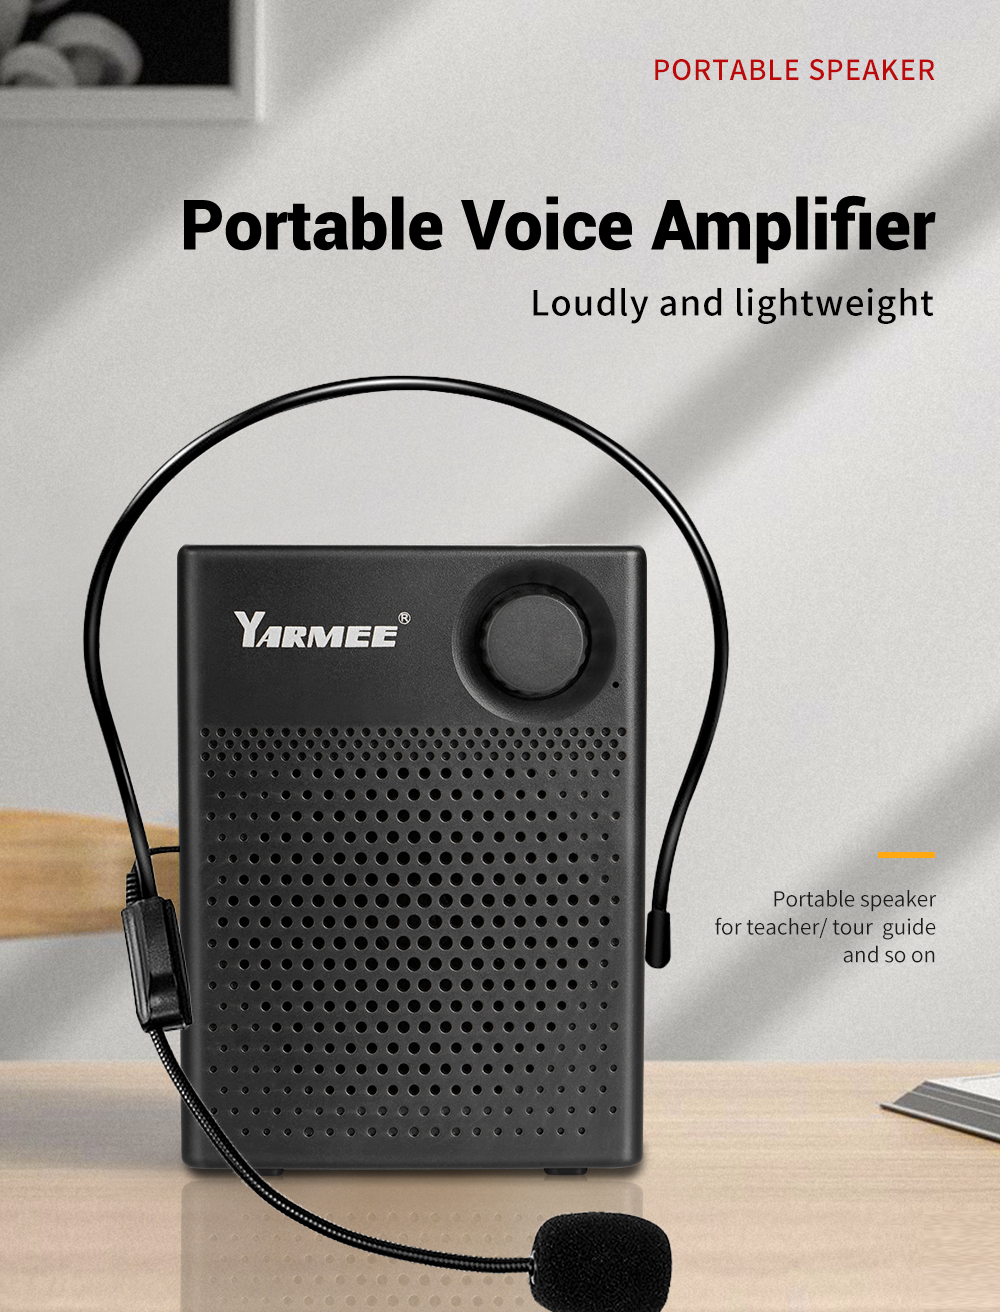 Portable amplifier with headset microphone